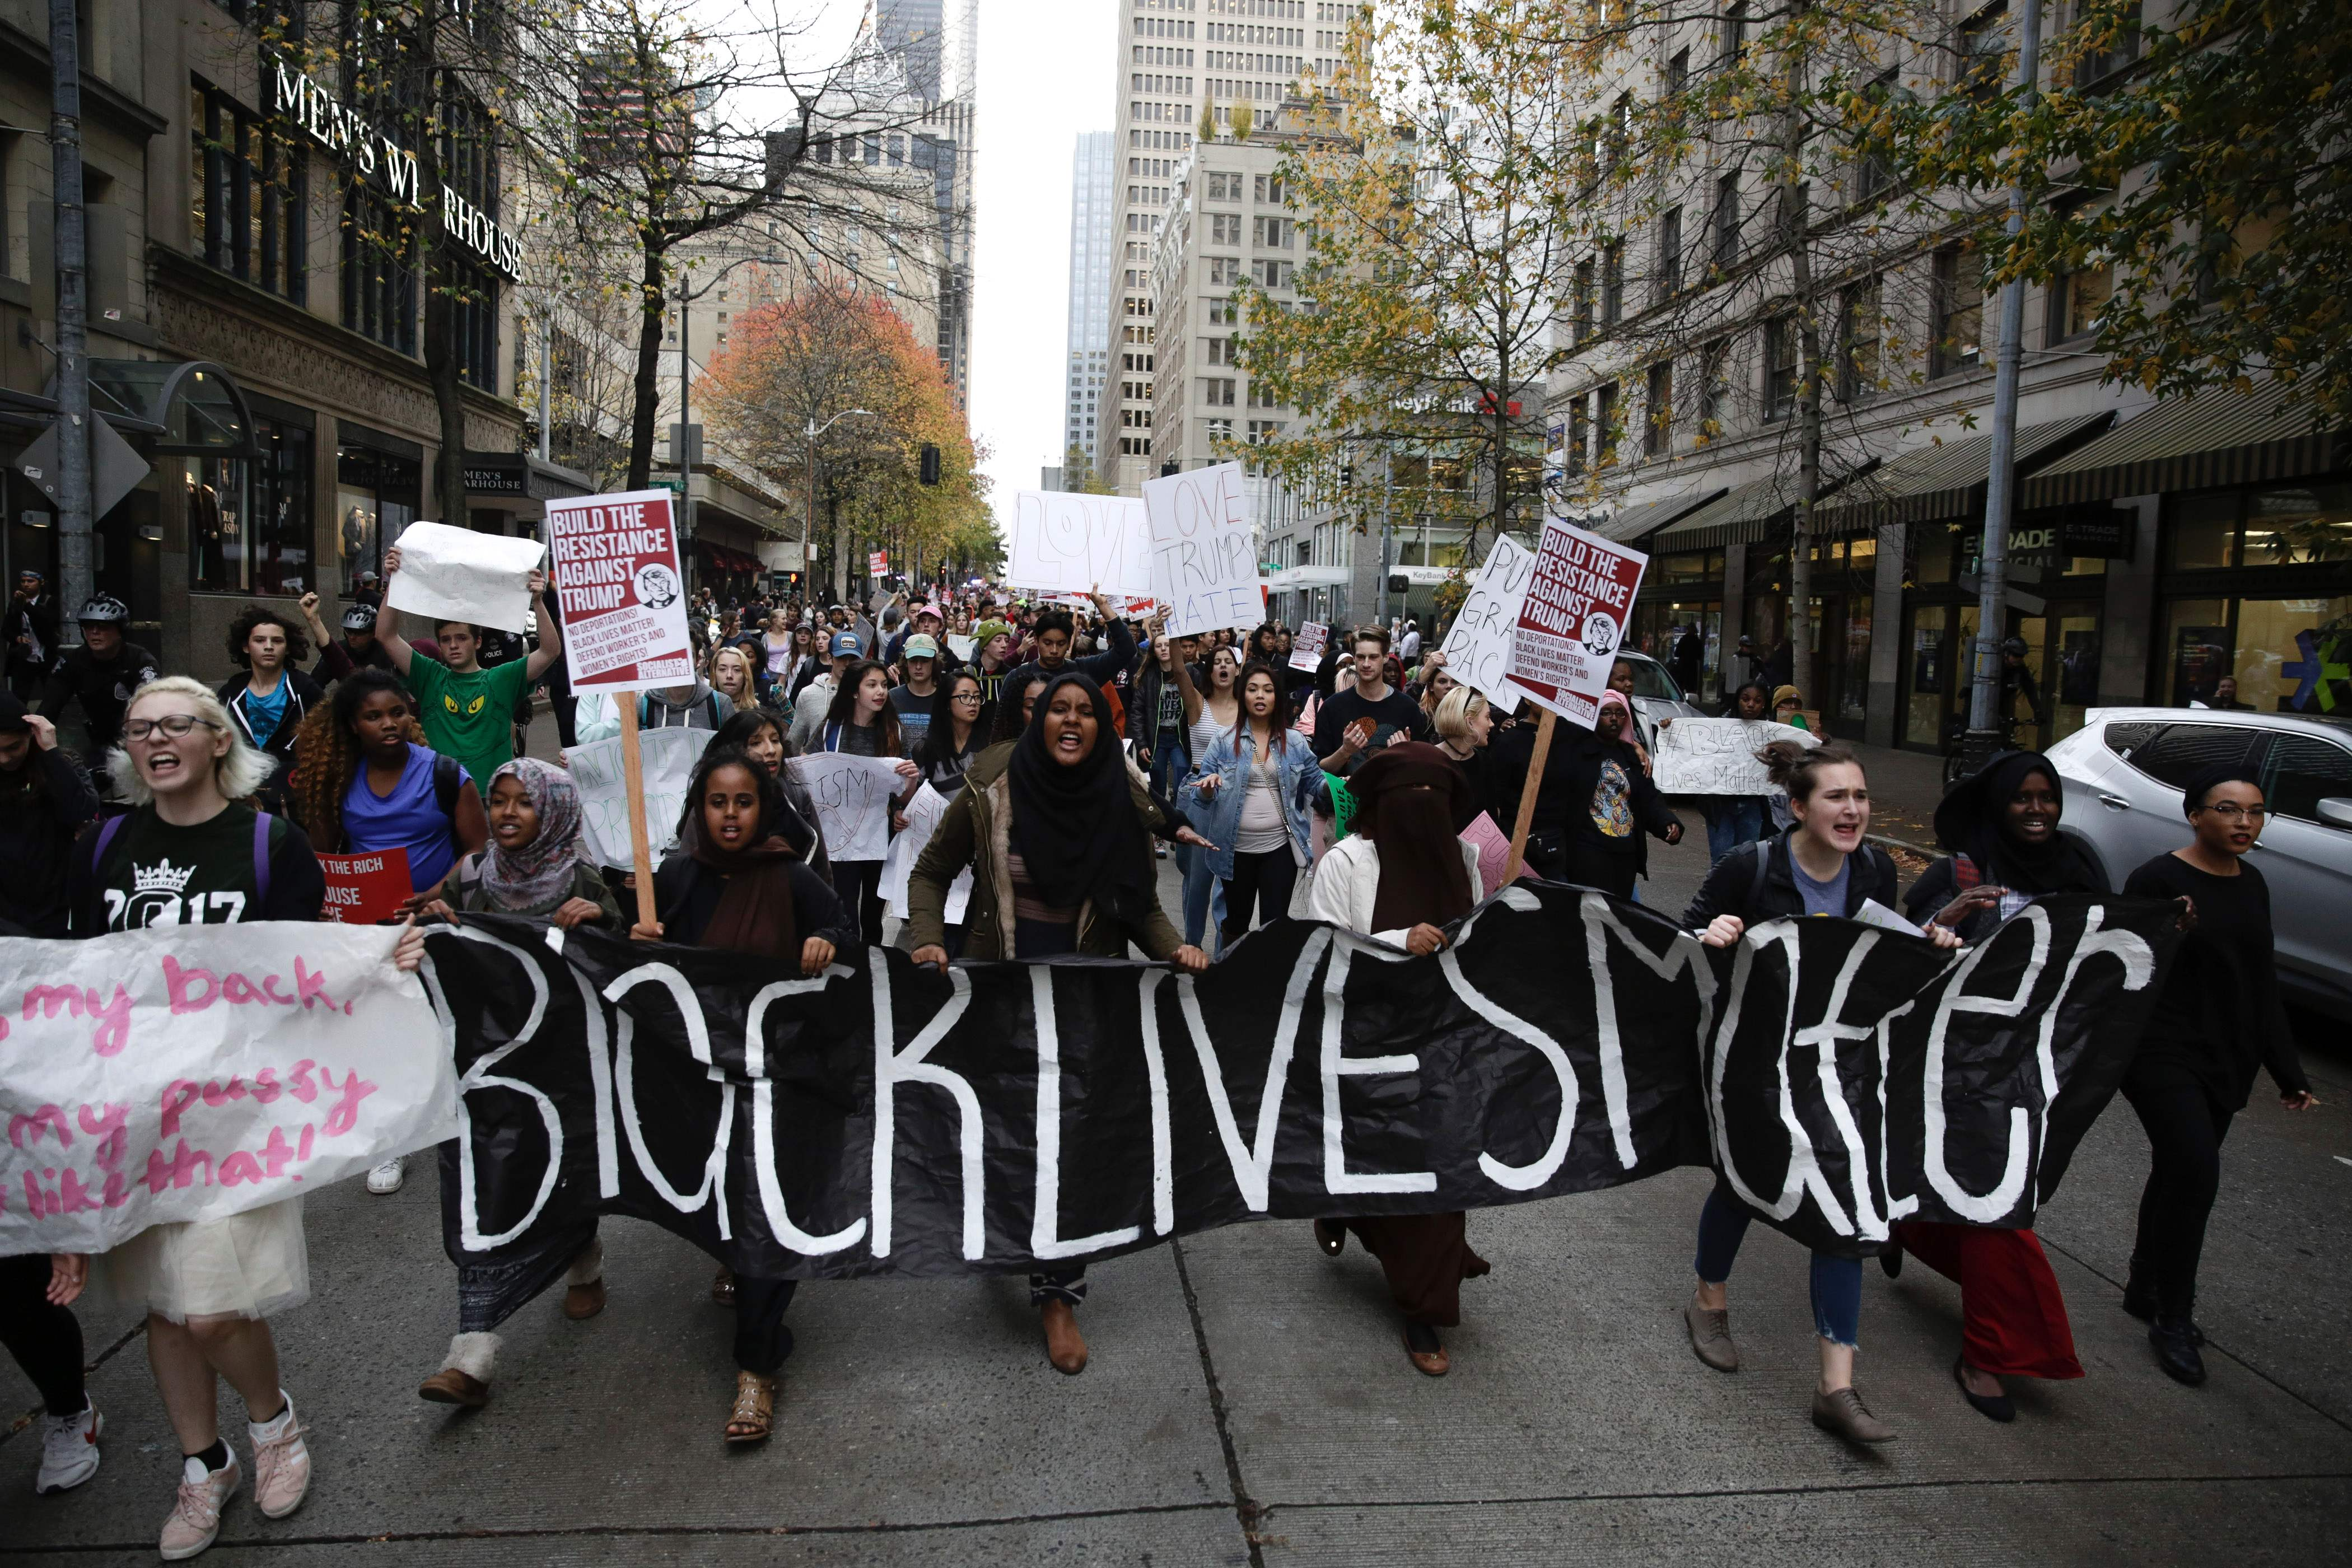 March for Racial Justice organizers sorry for scheduling it on Yom Kippur